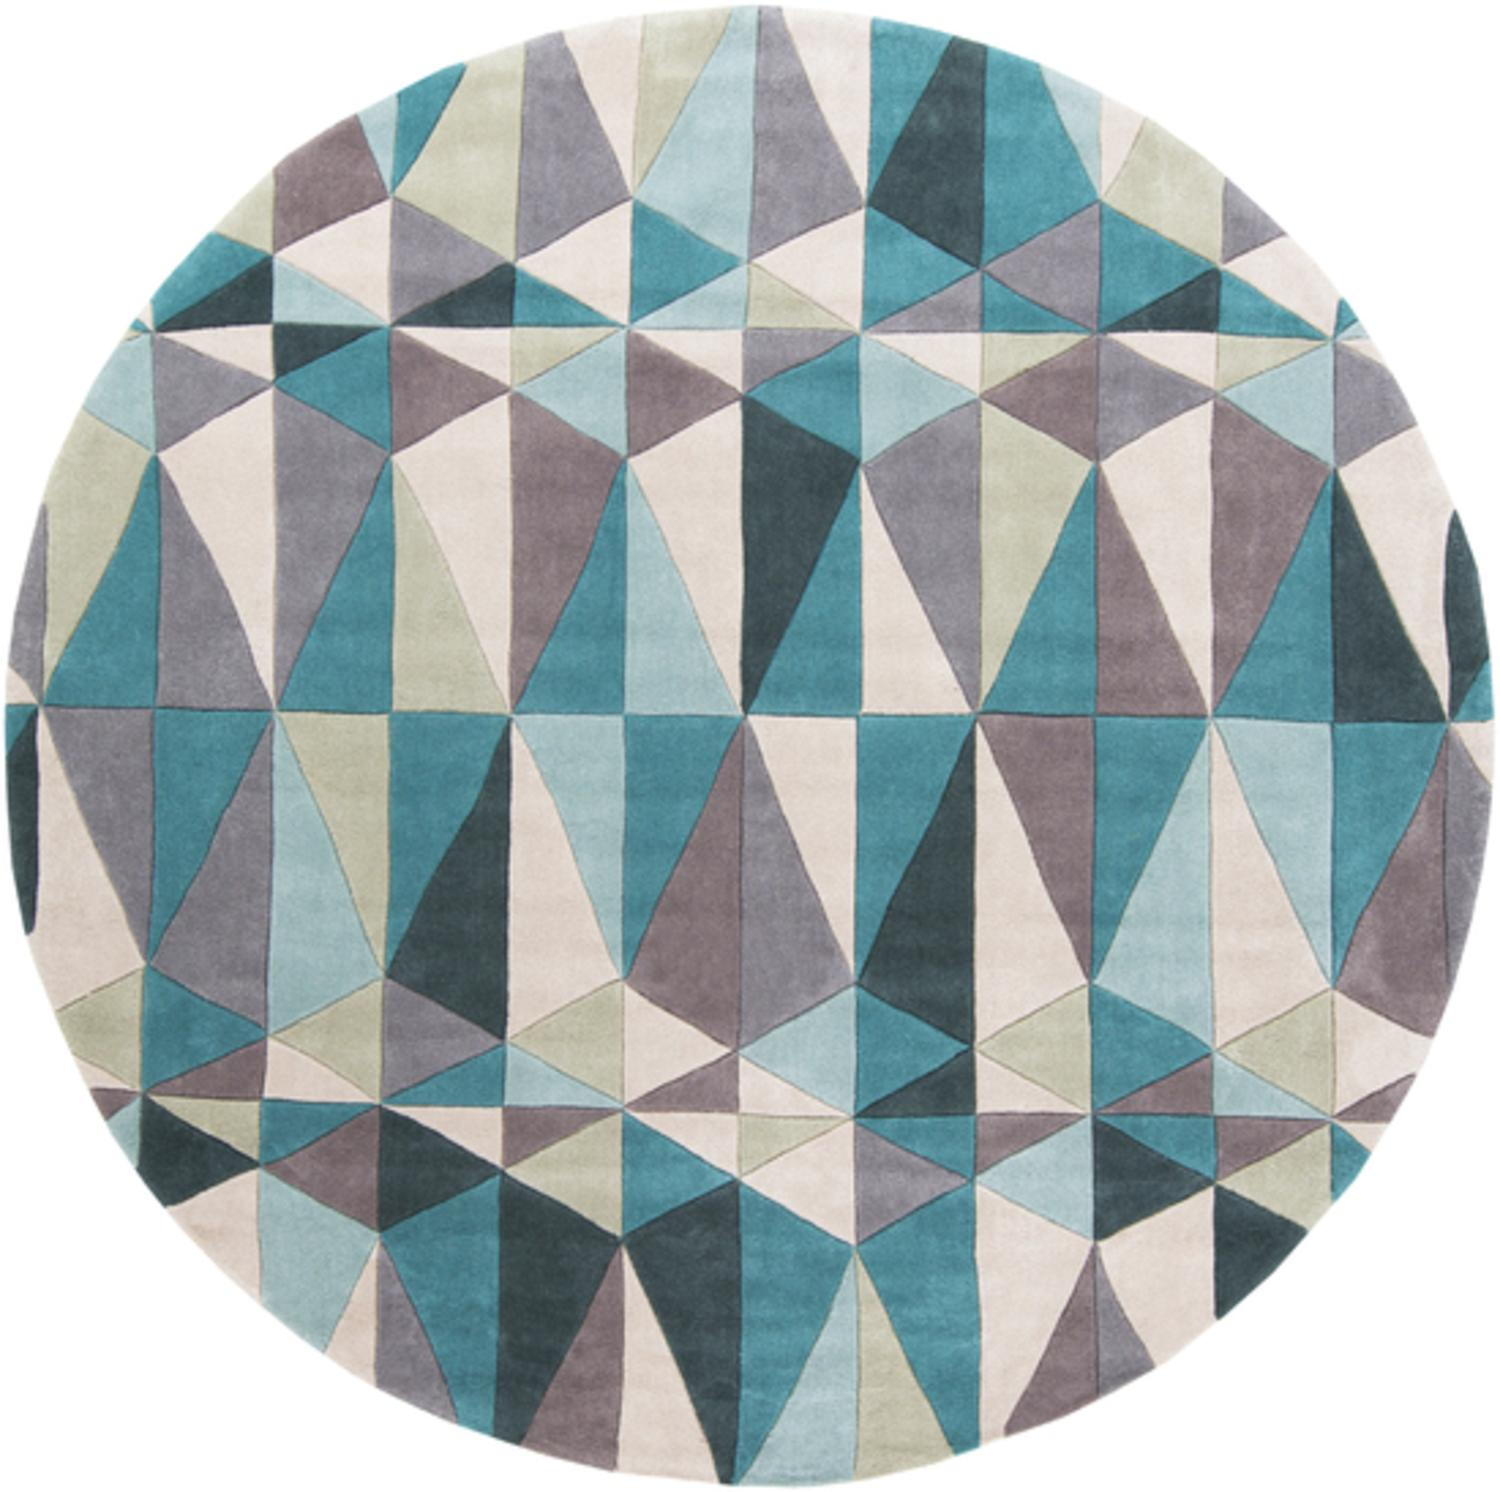 8' Mid-Century Geo Prism Teal Blue and Gray Hand Tufted Round Area Throw Rug